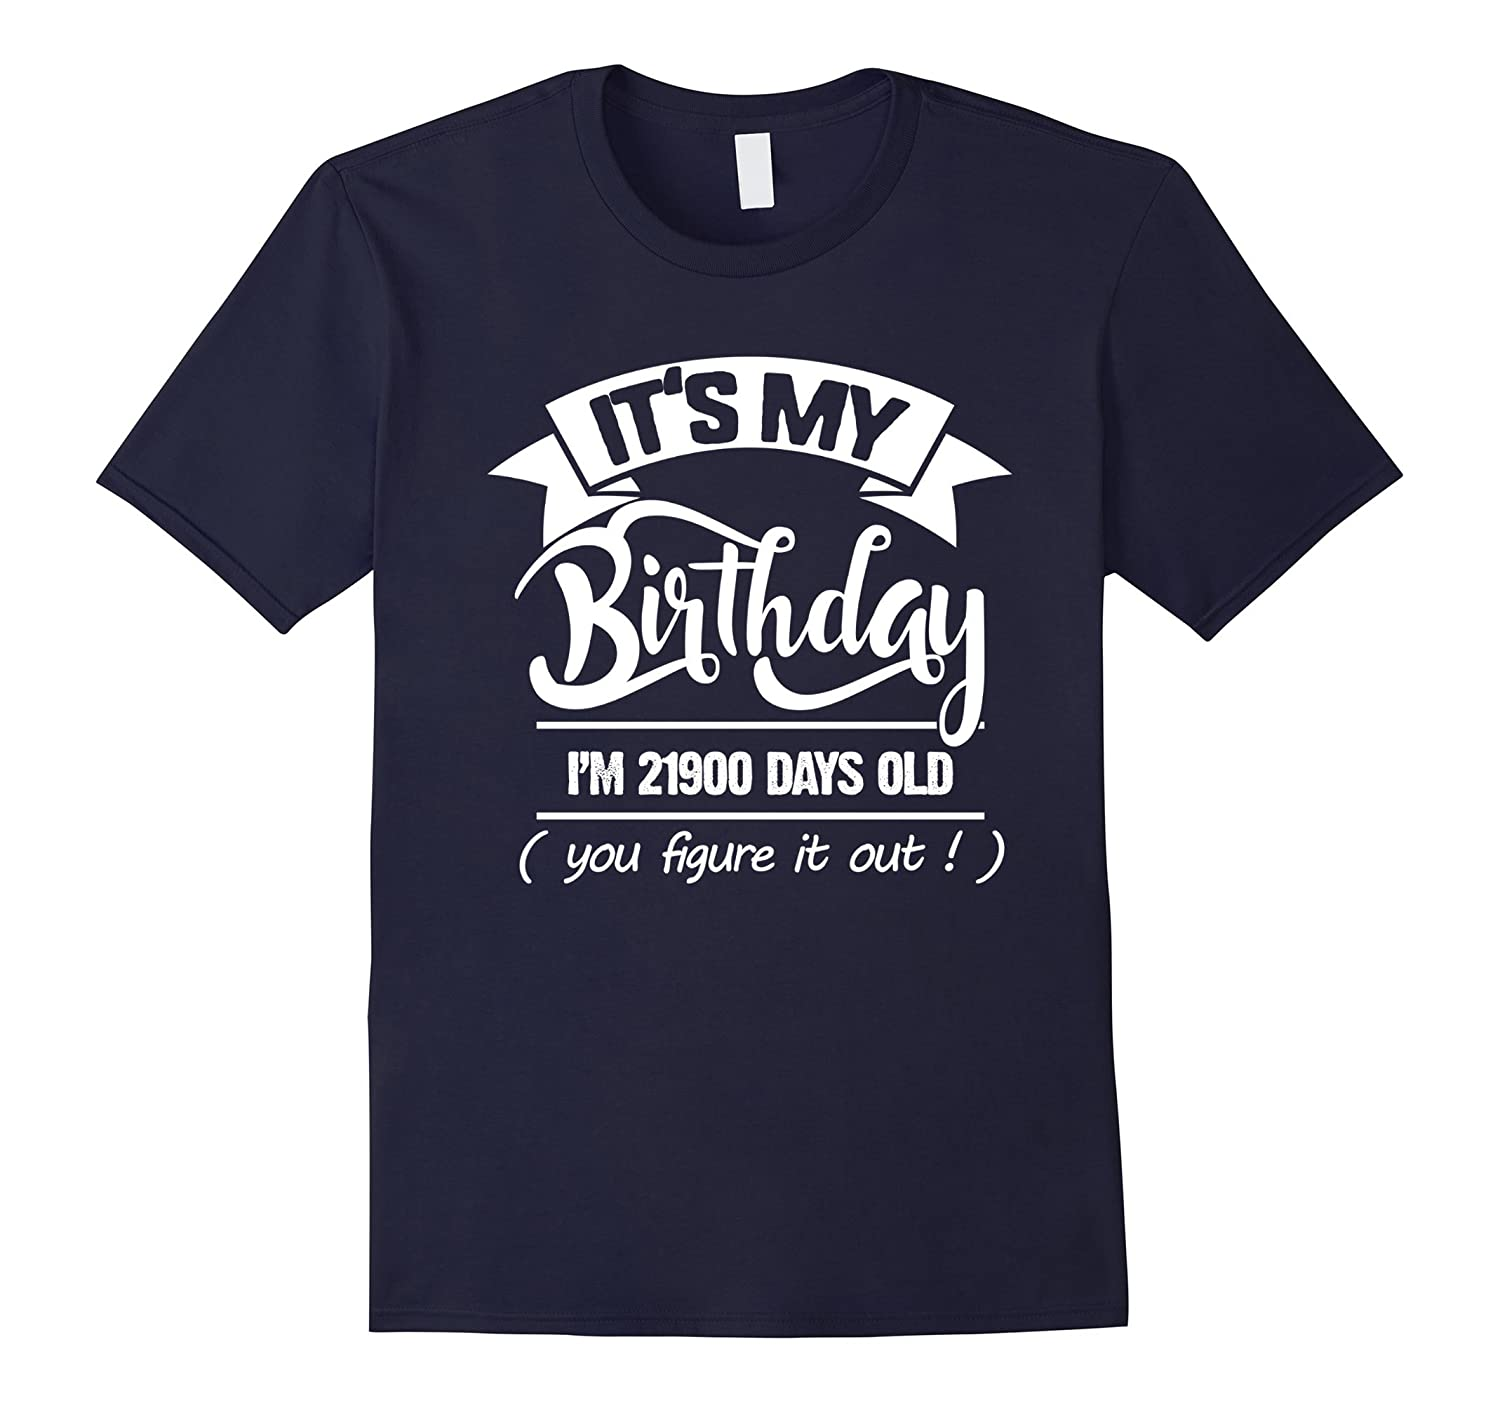 60th Birthday Gift Ideas Funny T Shirt For Men Women BN